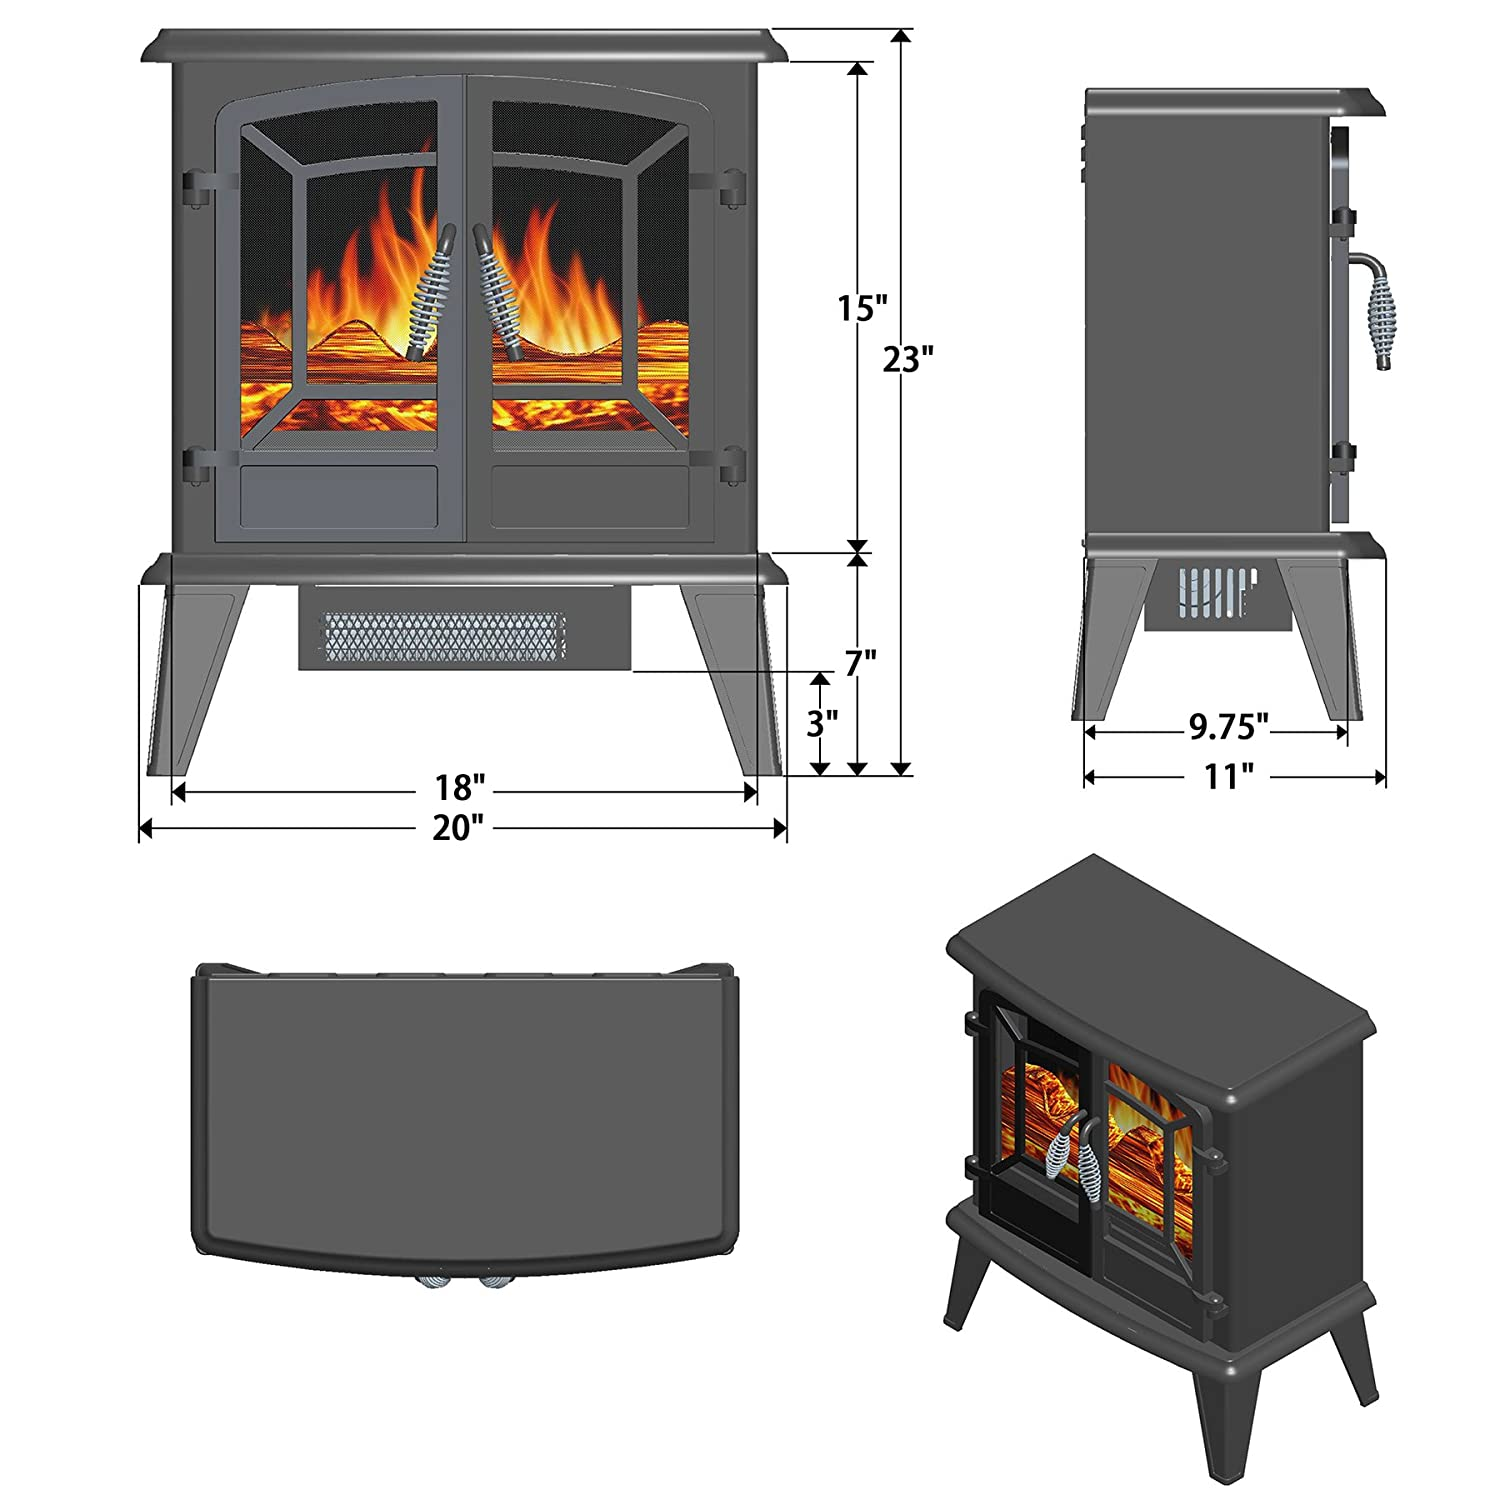 Portable Fireplace Heater Fireplace Decoration 3d Flame Heater 10 X